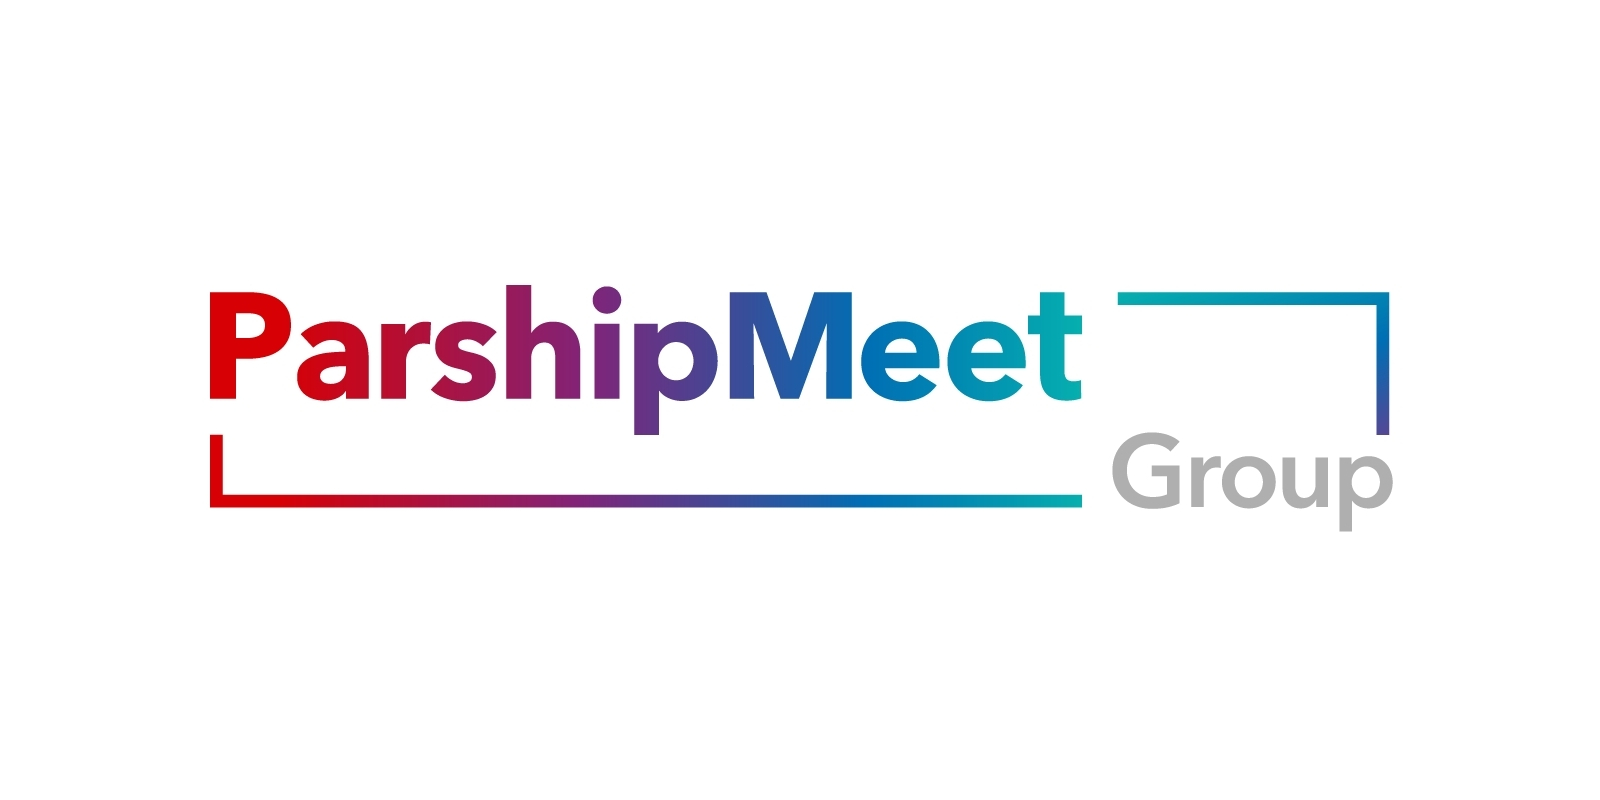 Bloomberg Reports ParshipMeet Group is Eyeing IPO in Germany